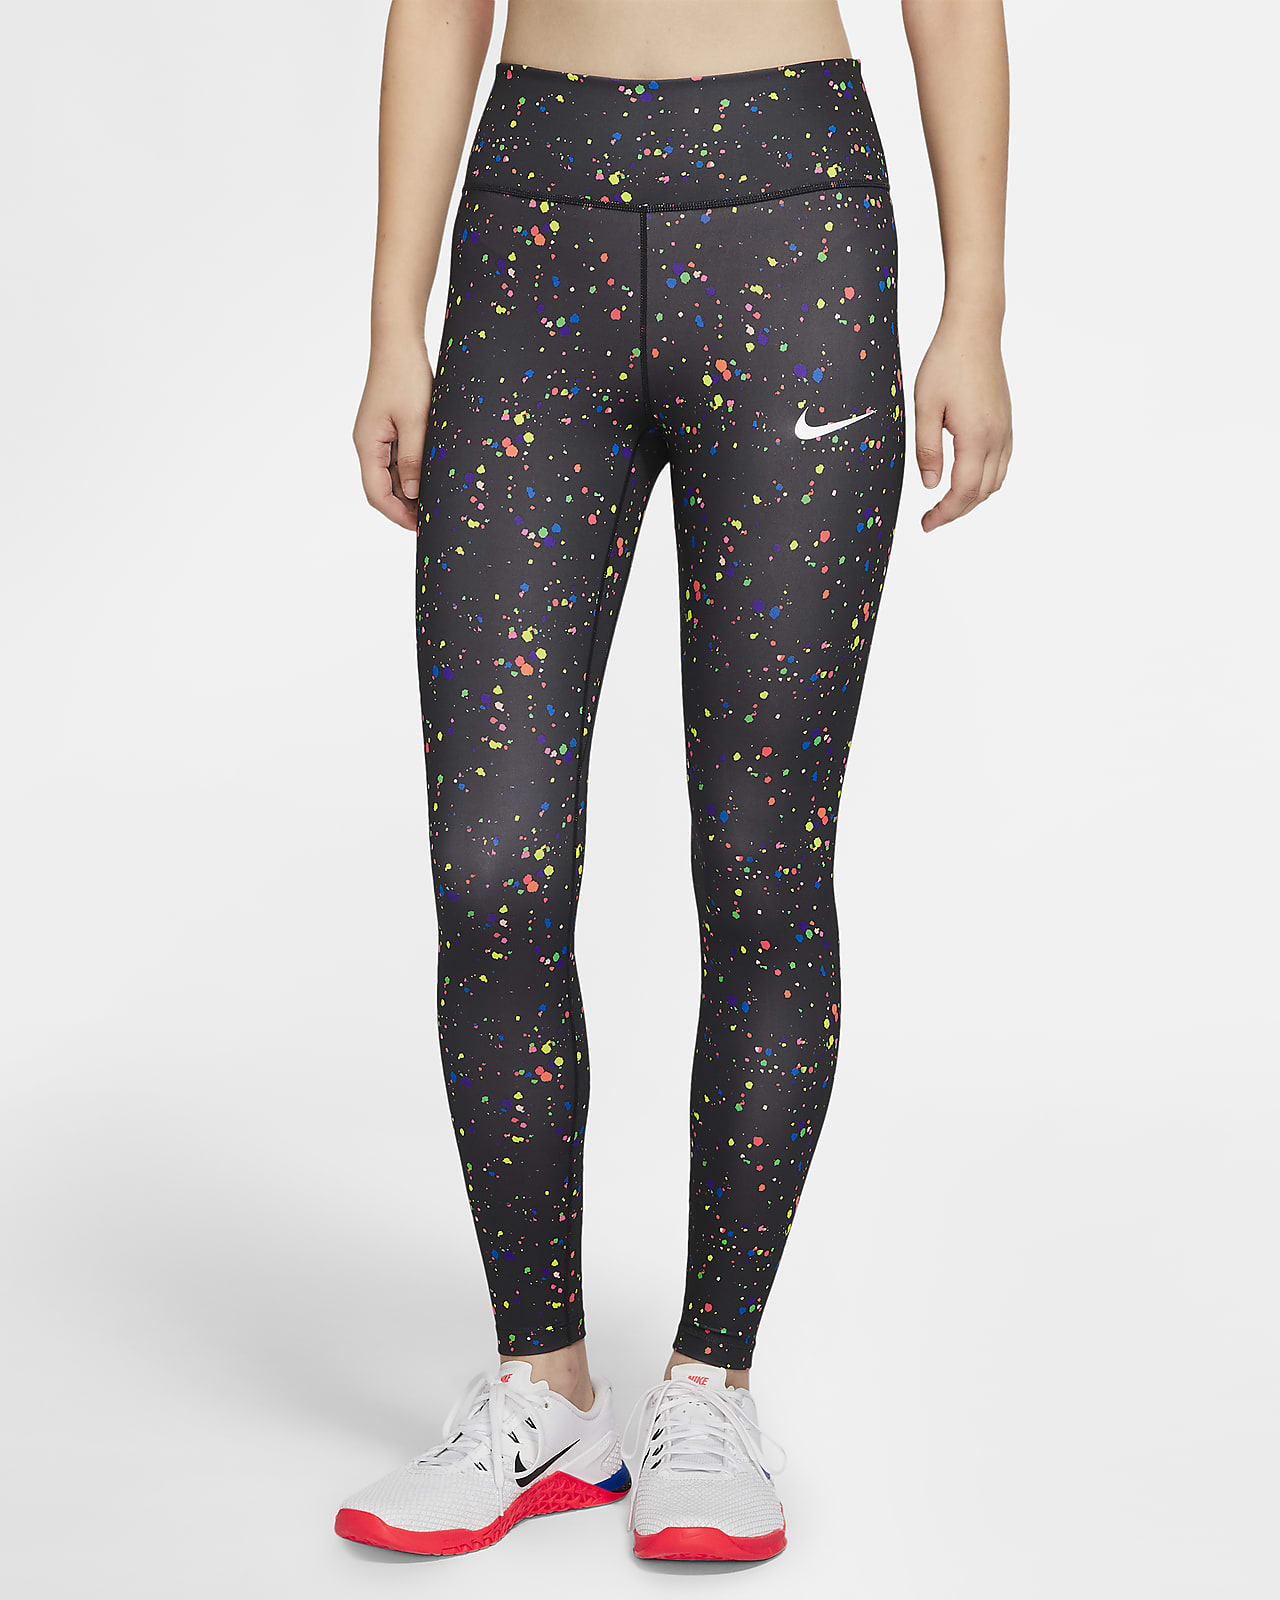 Nike One Women's Printed Tights